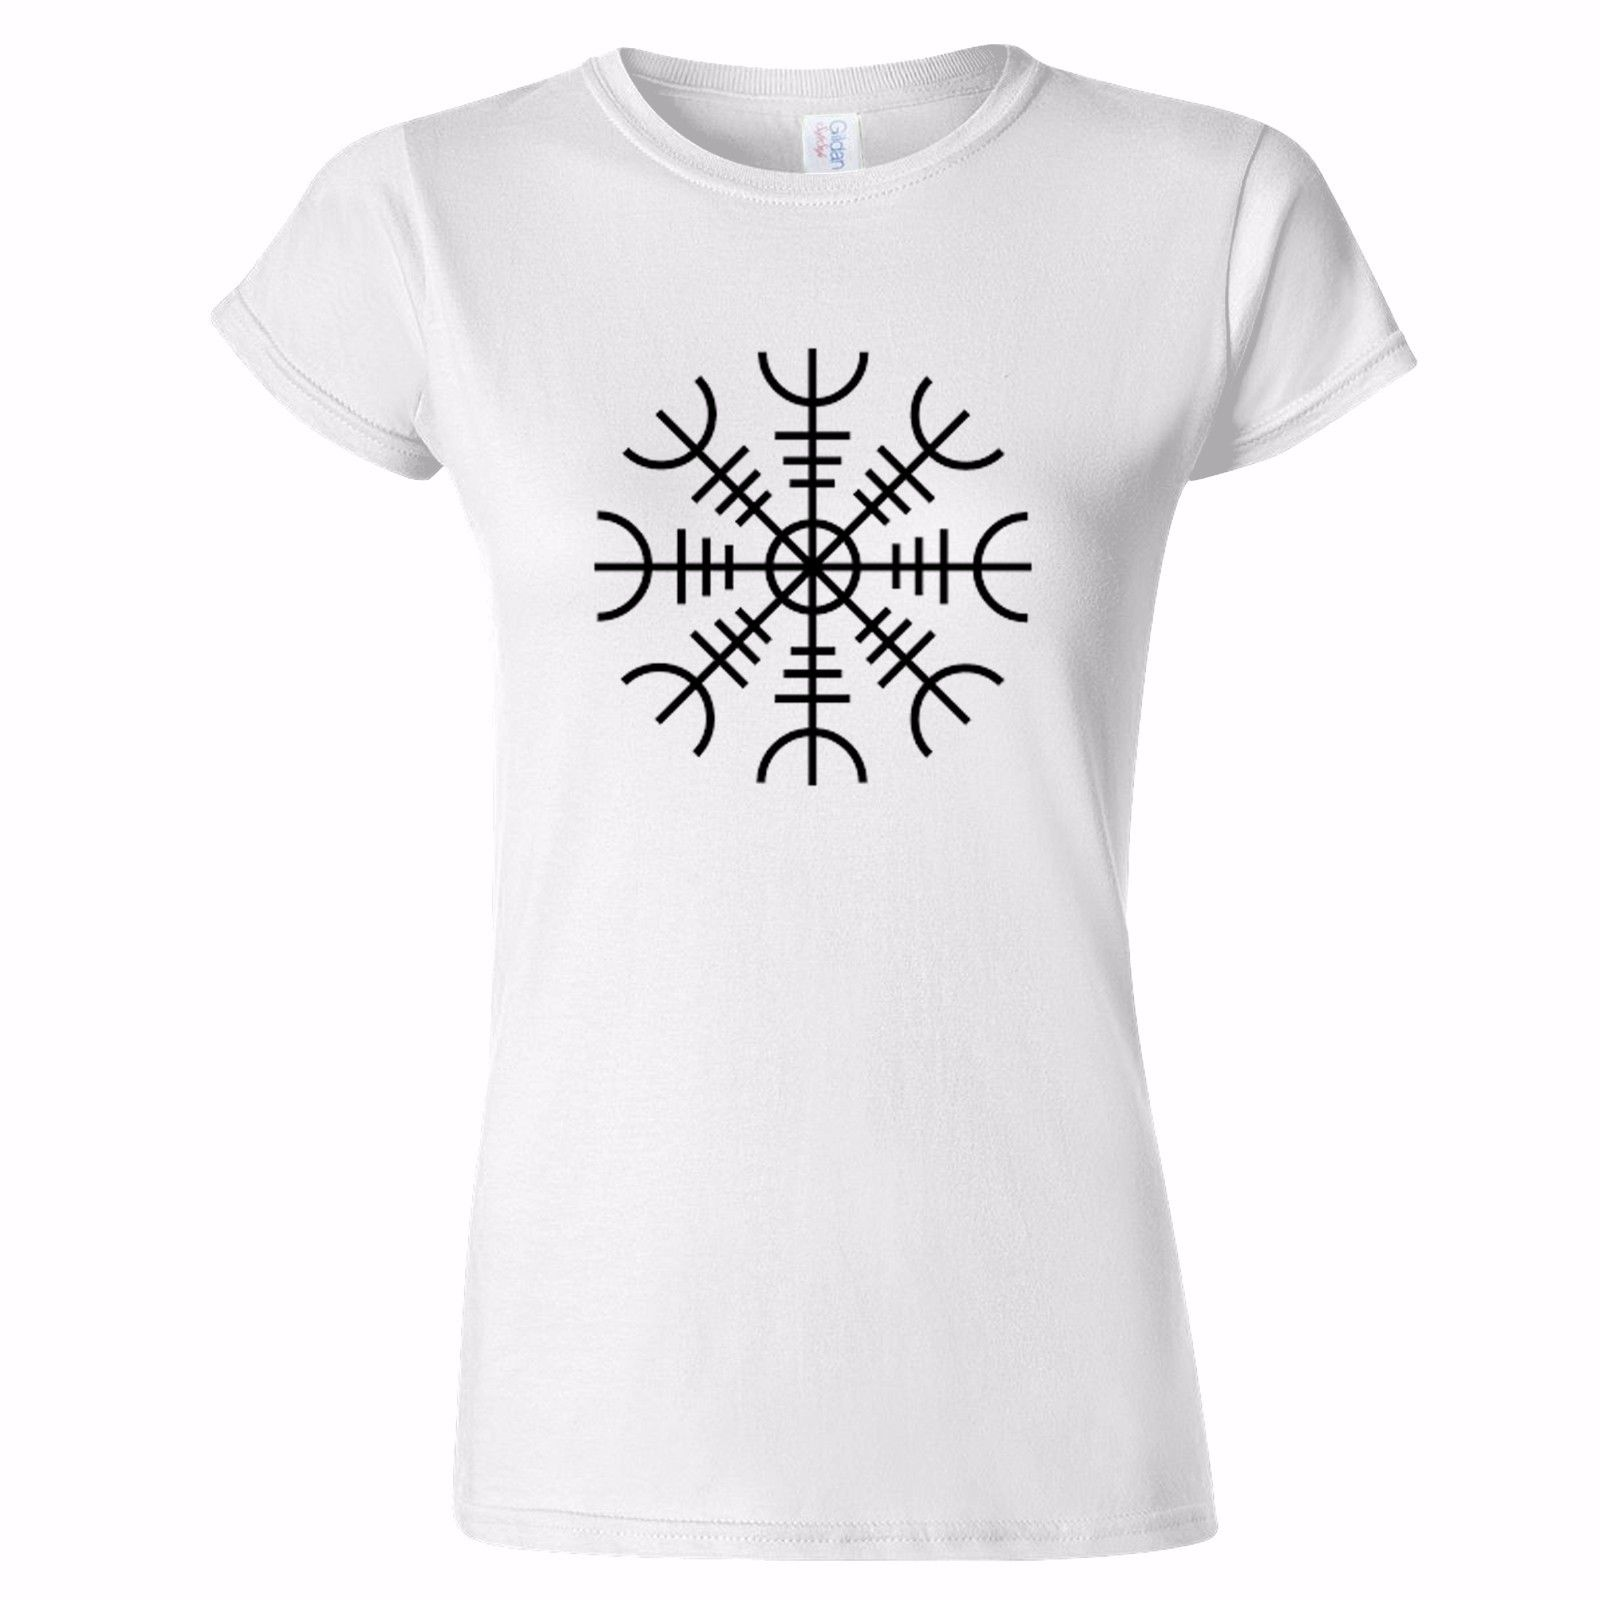 HELM OF AWE 2 WOMENS T SHIRT NORSE NORDIC Aegishjalmur NORWAY SYMBOL NORSE New T Shirts Funny Tops Tee New Unisex Funny Tops in T Shirts from Men 39 s Clothing